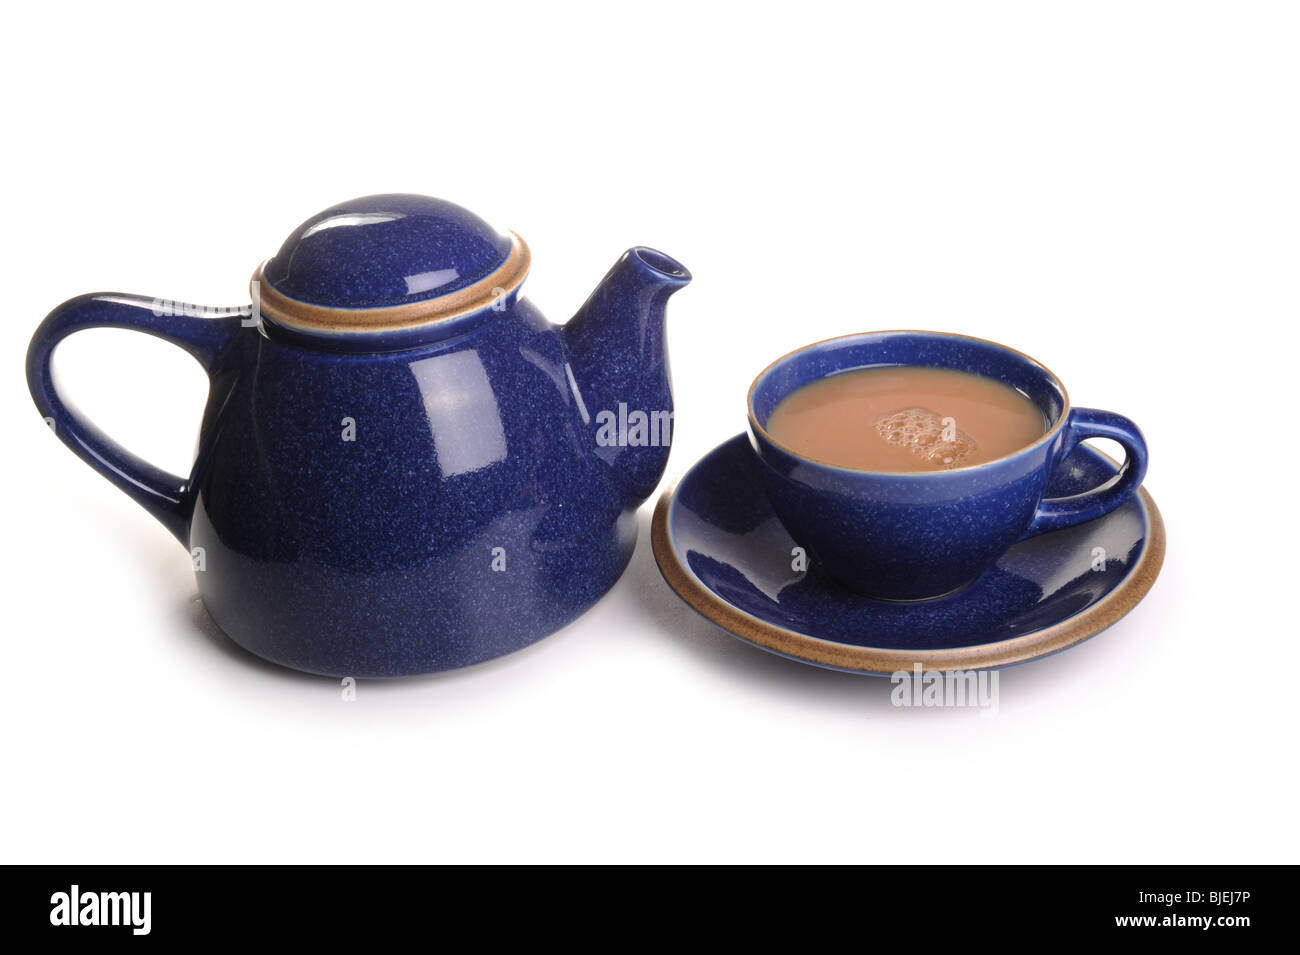 Tea Pot and a cup of tea photographed in studio - Stock Image